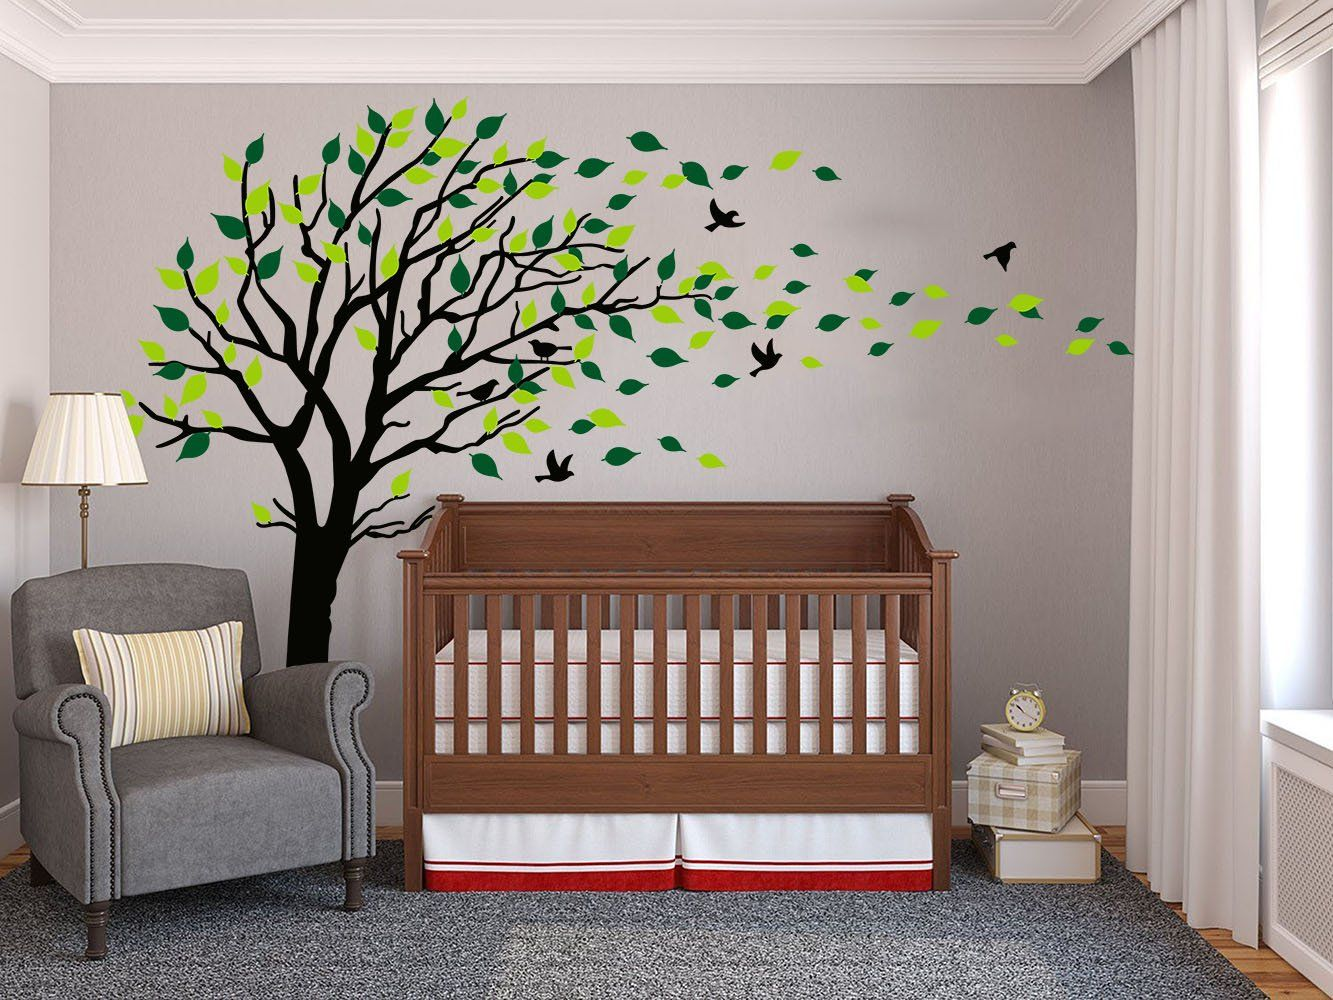 Custom Wall Decal Create Your Own Wall Decal Custom Decal